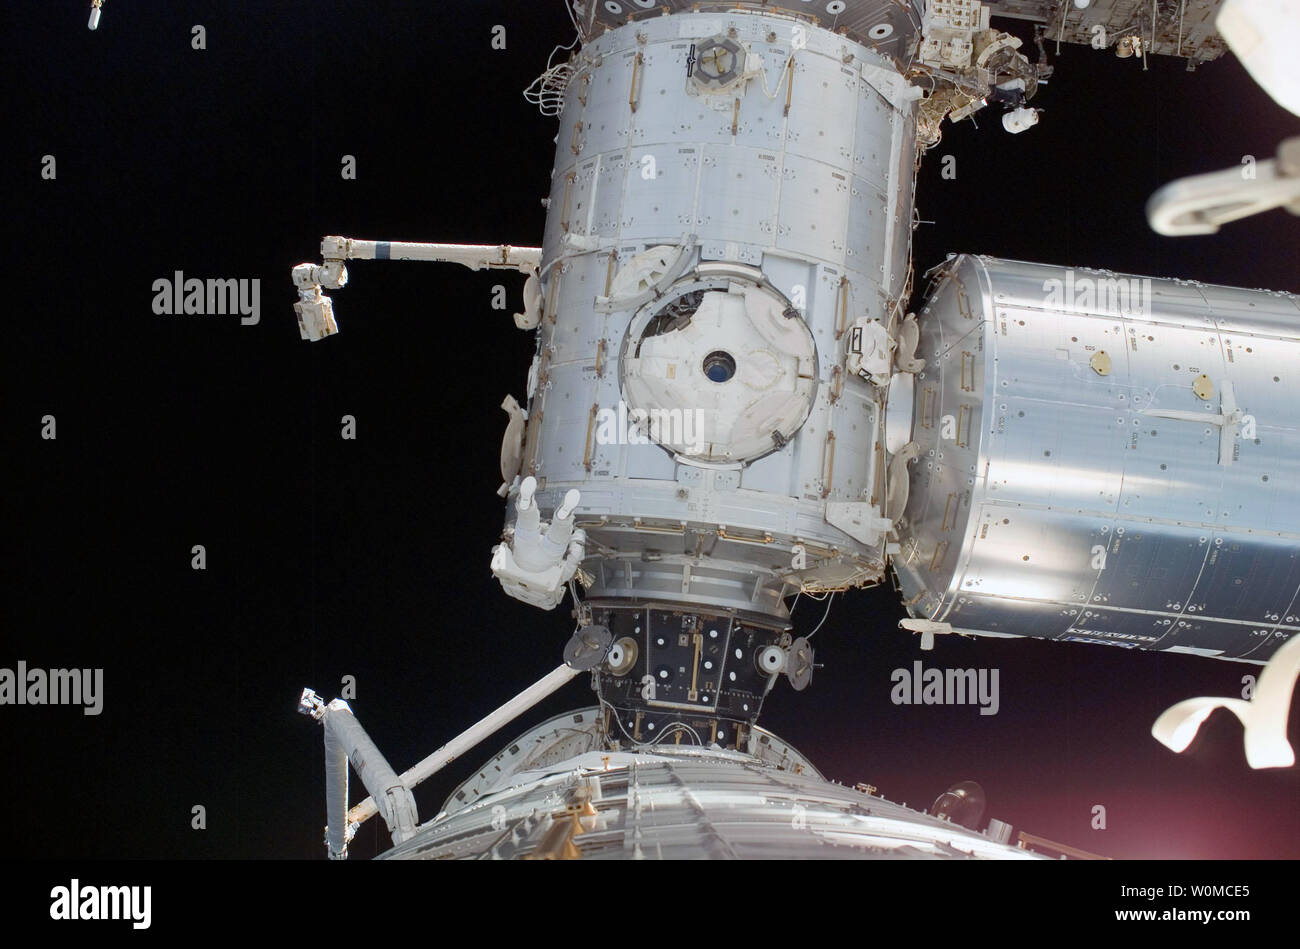 Mission Specialist Ron Garan, participates in the first scheduled session of extravehicular activity on the STS-124 mission of the space shuttle Discovery at the International Space Station on June 3, 2008. During the six-hour, 48-minute spacewalk, Garan and astronaut Mike Fossum (out of frame), loosened restraints holding the Orbiter Boom Sensor System in its temporary stowage location on the space station's starboard truss, prepared the Kibo Japanese Pressurized Module for its installation to the space station, demonstrated cleaning techniques for the Solar Alpha Rotary Joint's race ring and - Stock Image